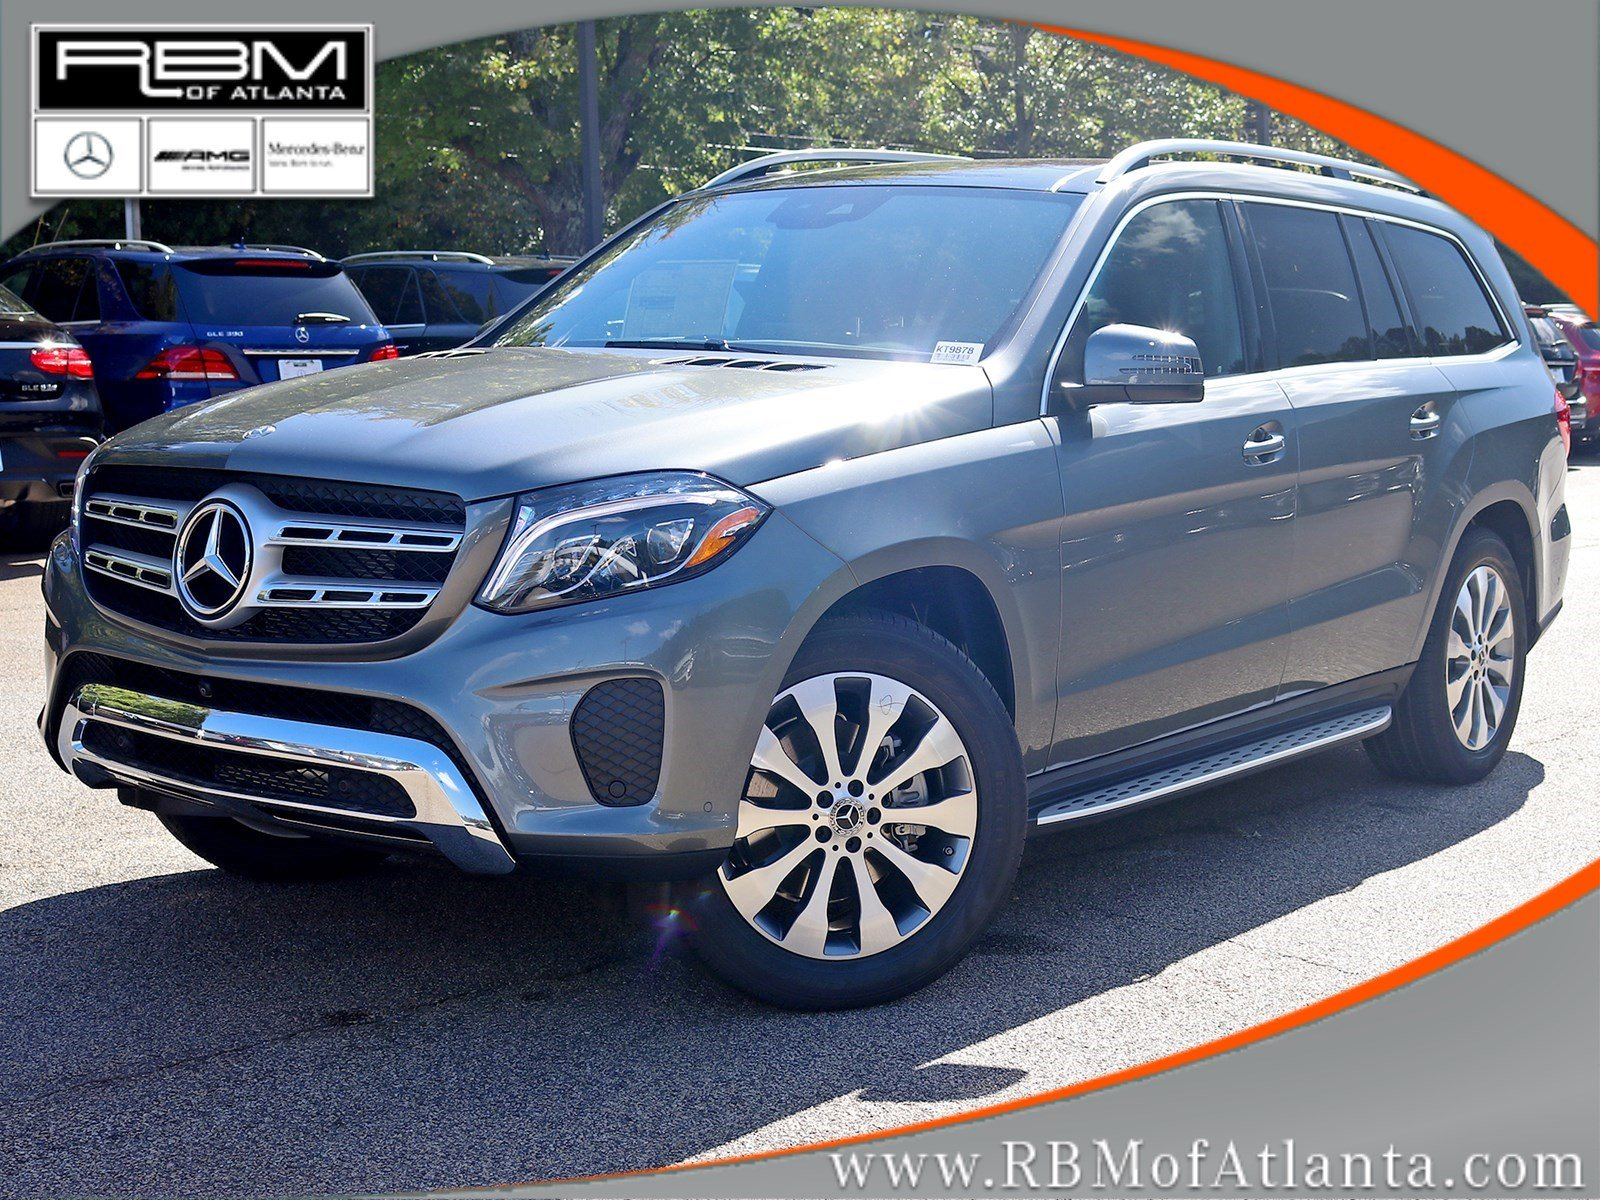 New 2018 mercedes benz gls gls 450 suv in atlanta kt9878 for Mercedes benz mechanic jobs